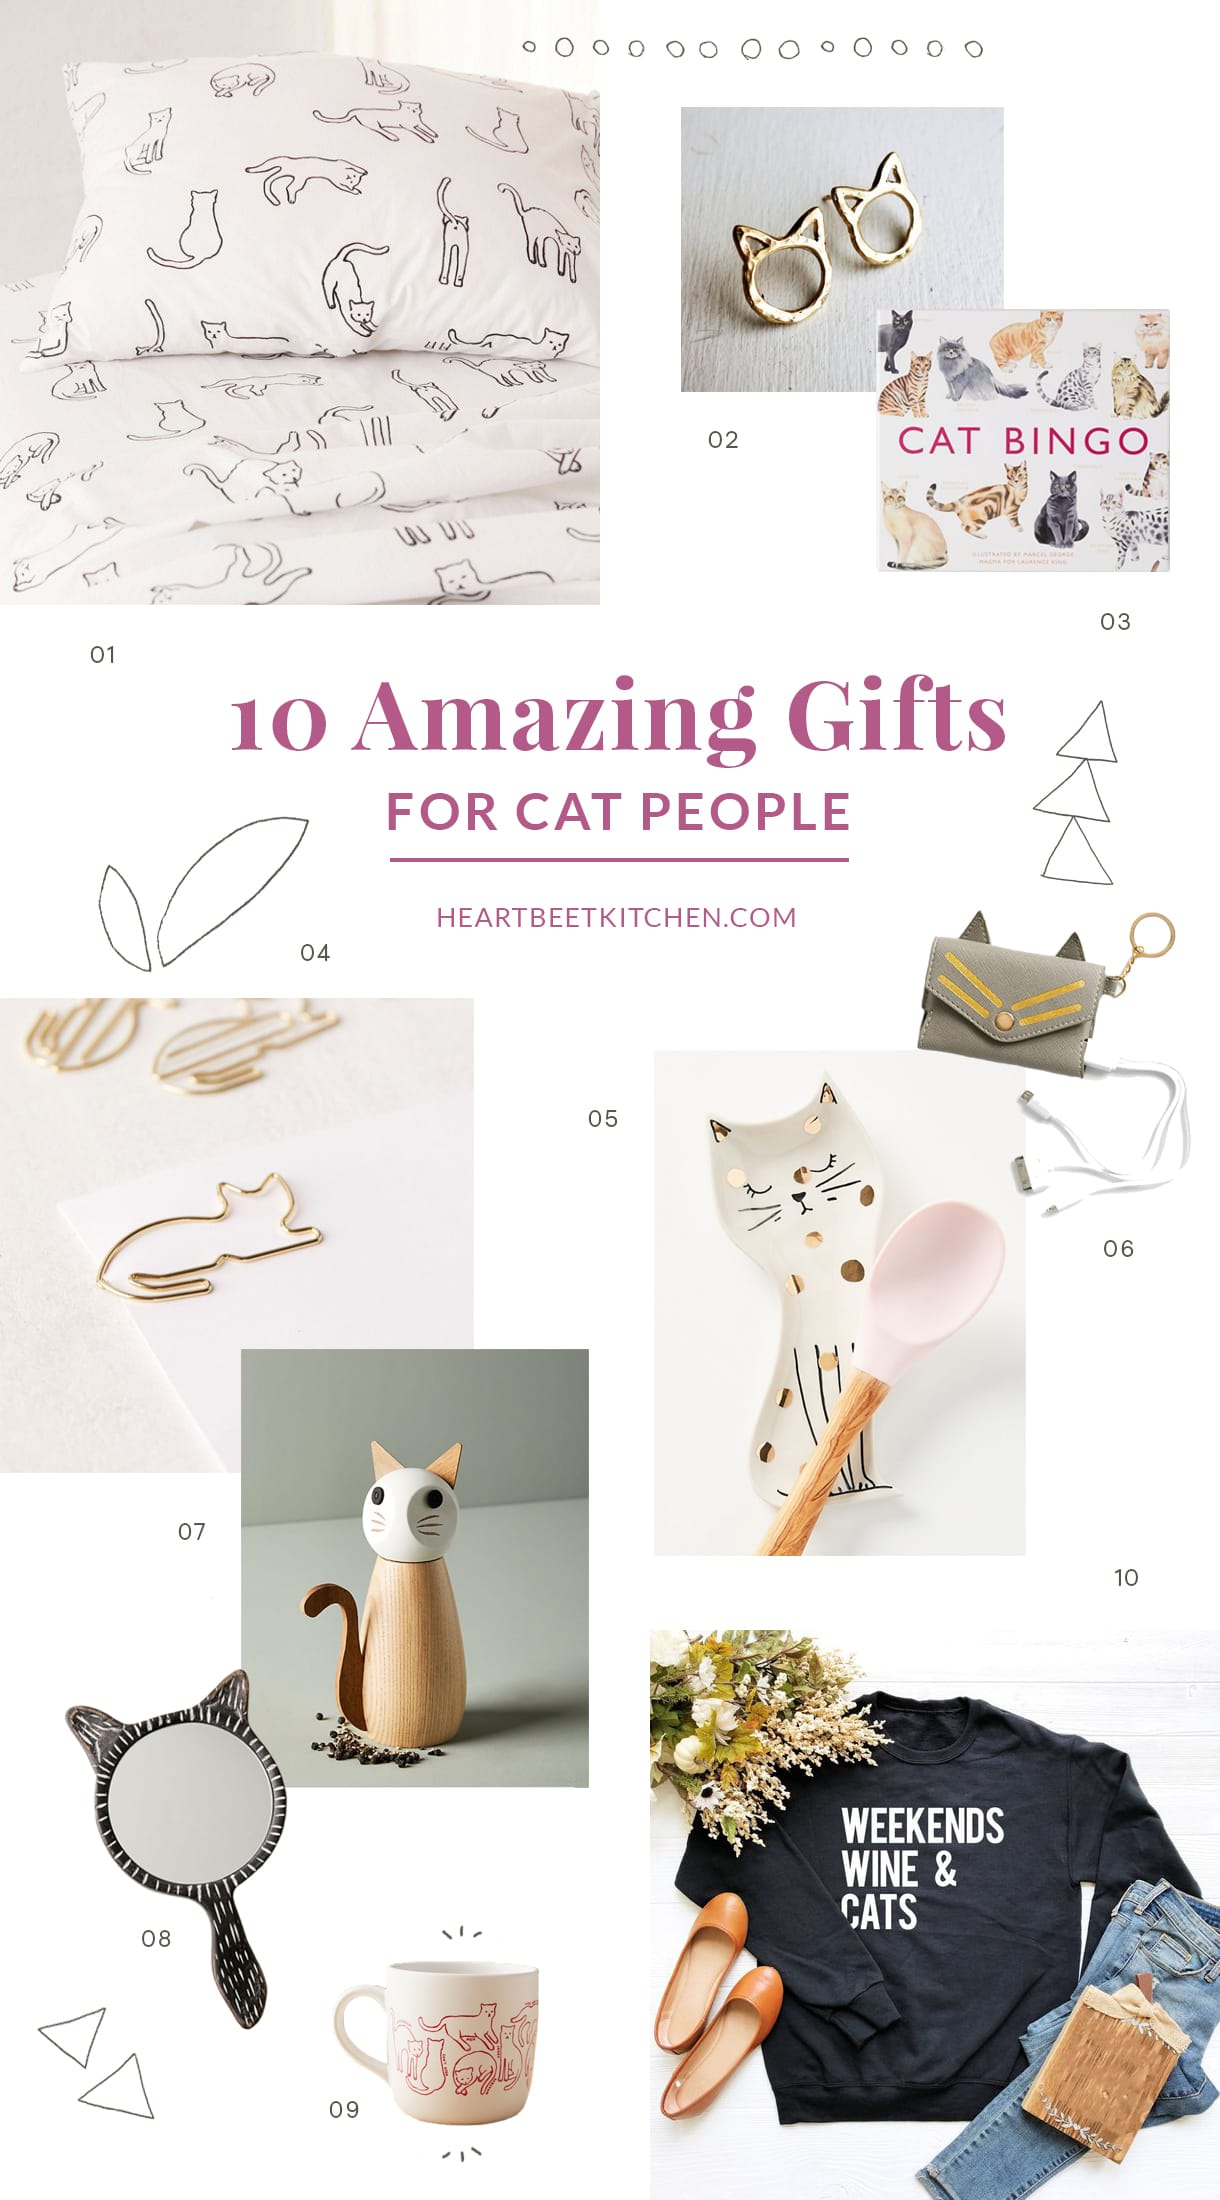 10 Amazing Gifts for Cat People, People who love cats, Cat Lovers